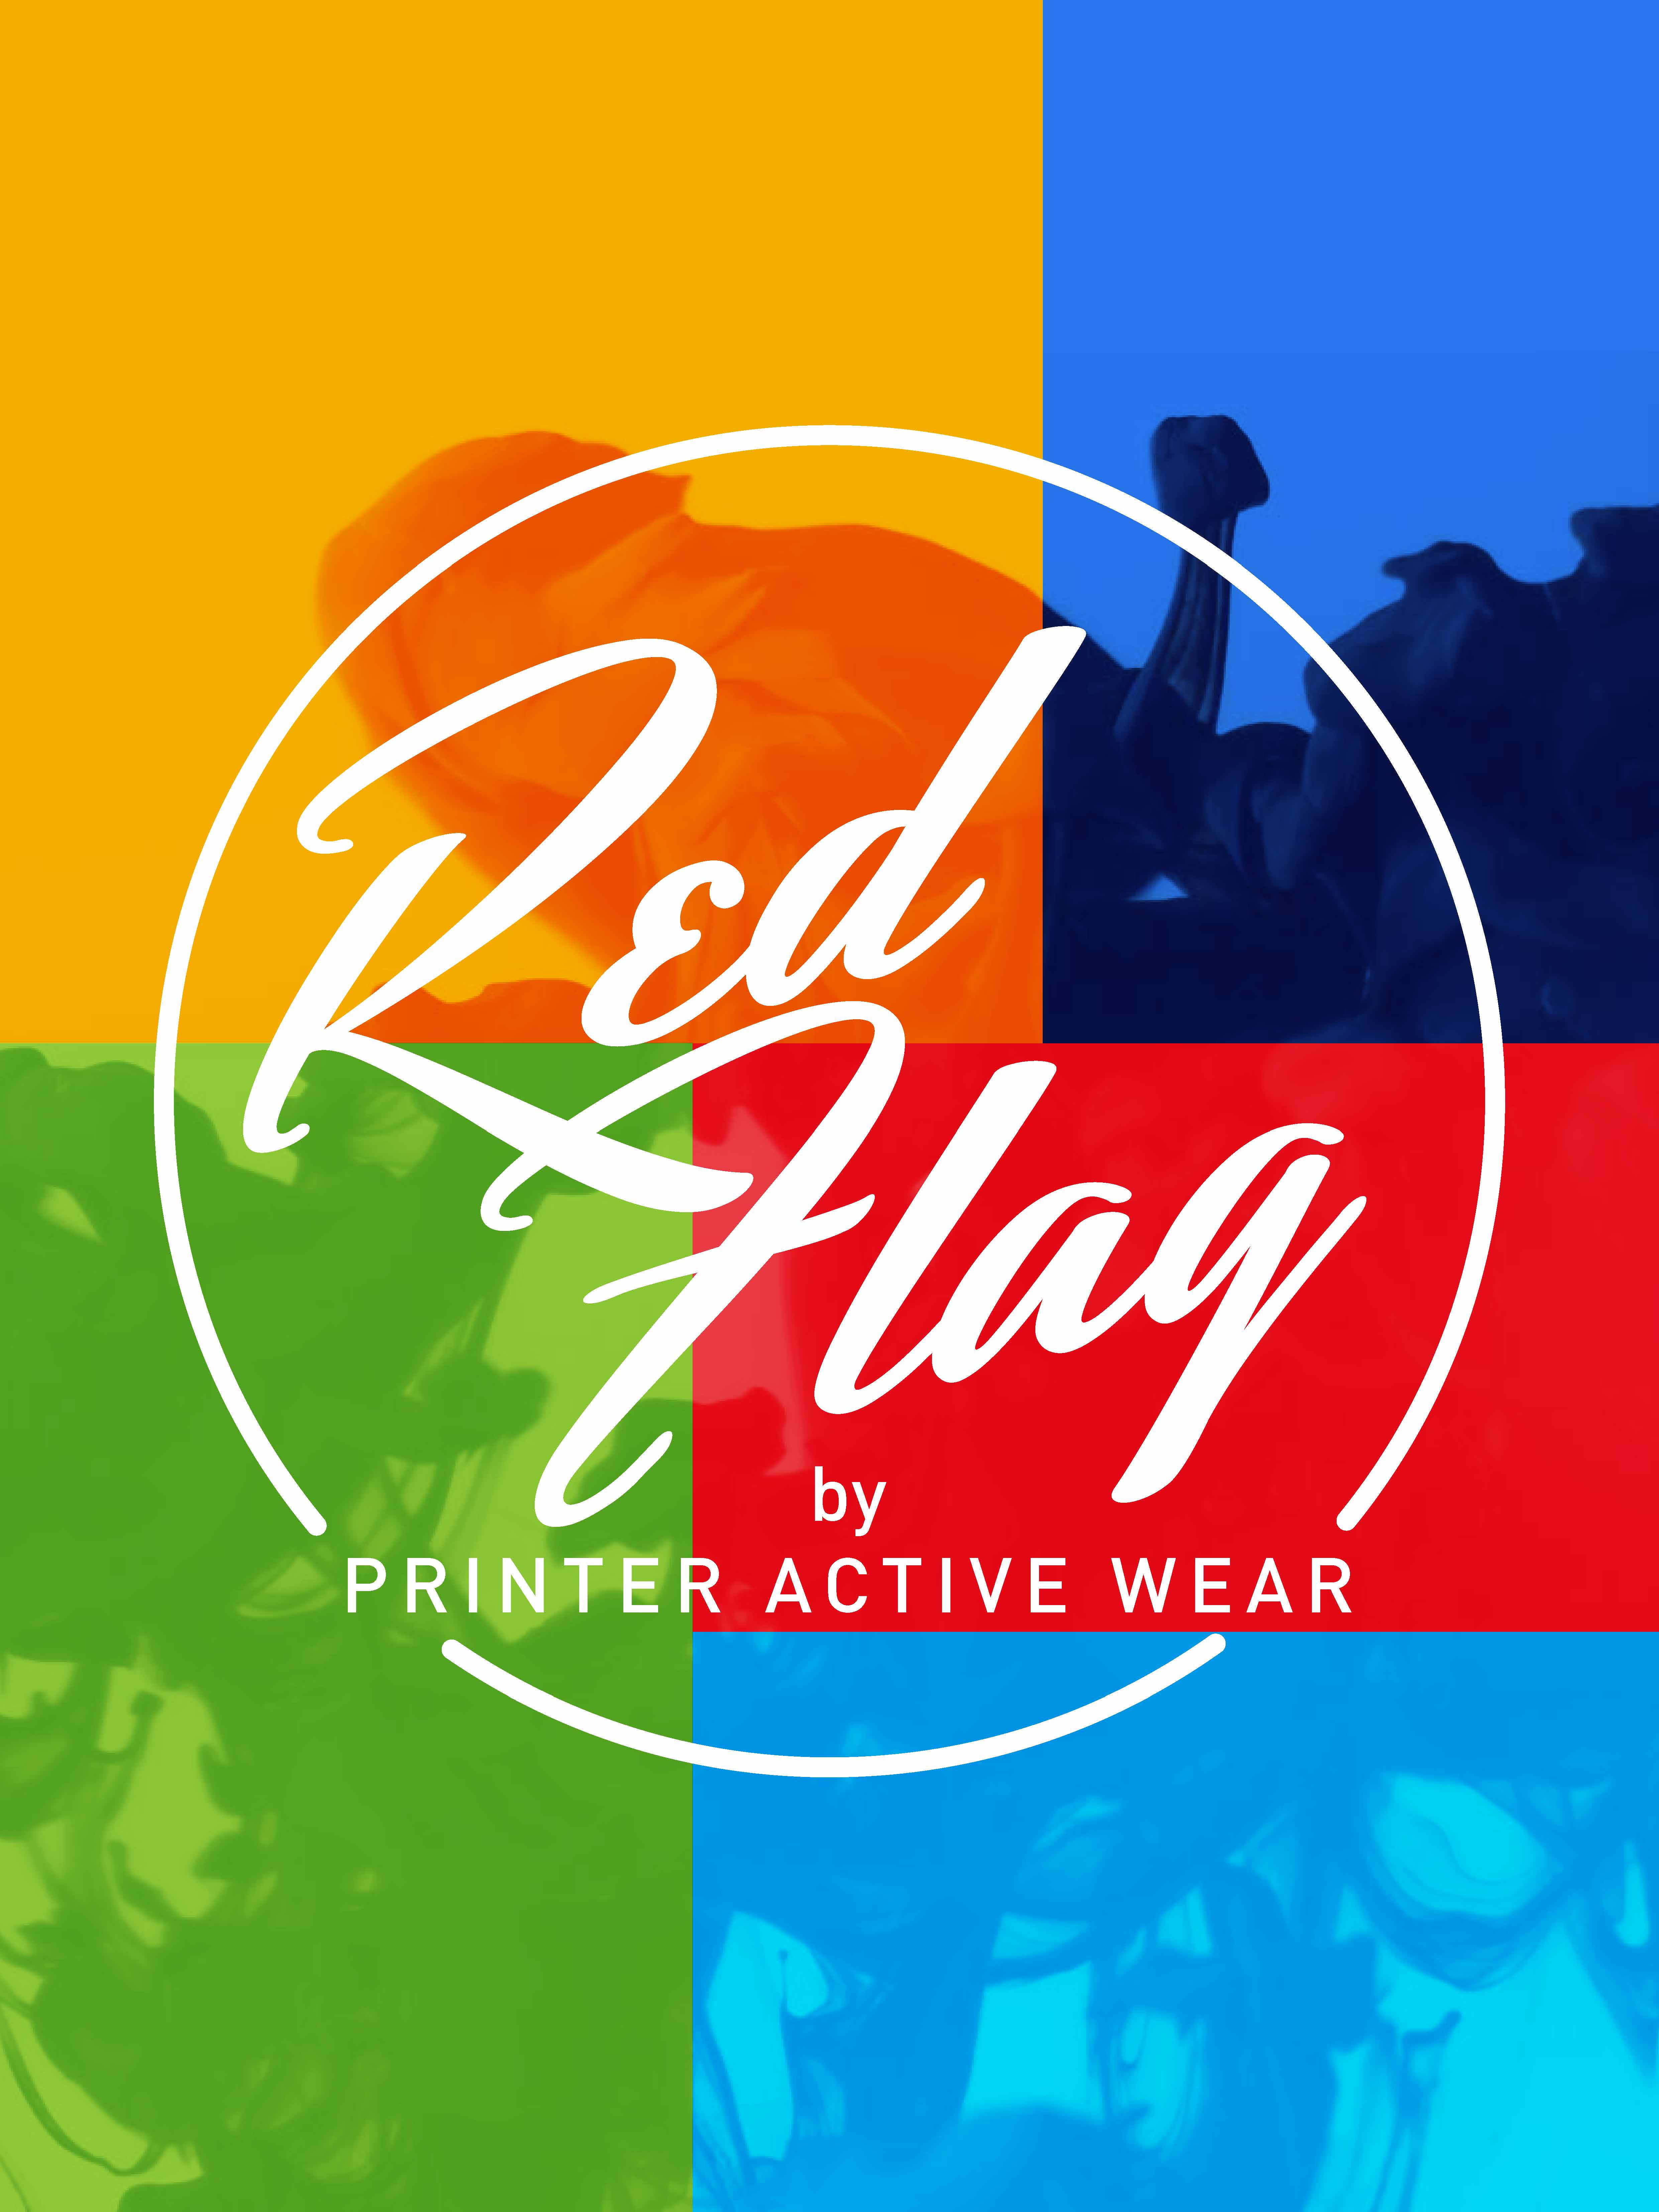 Red Flag by Printer Active Wear